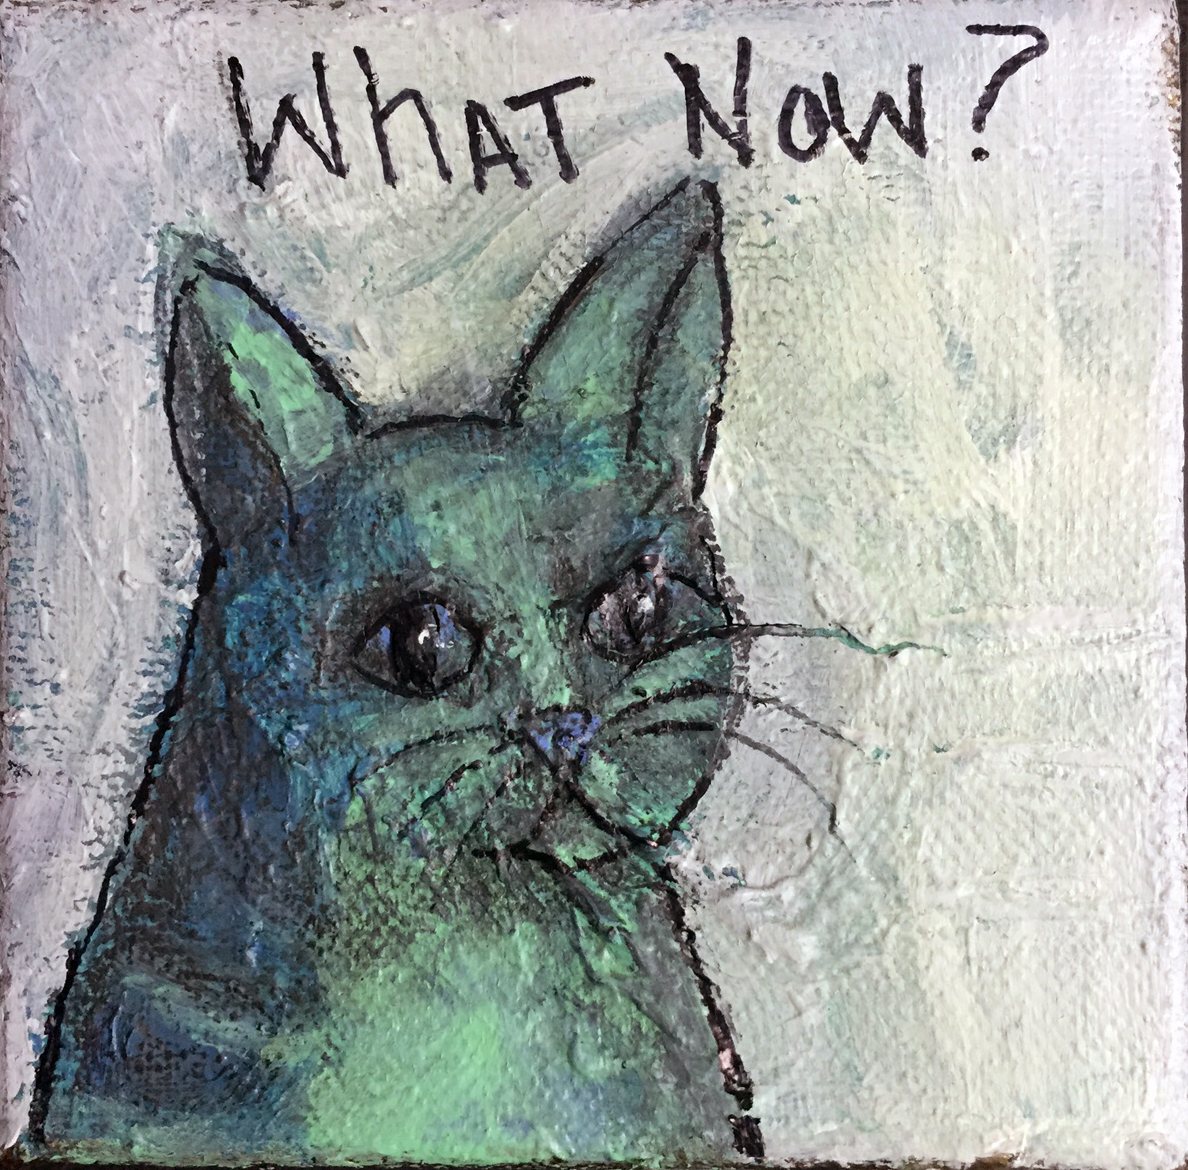 """Little What Now Cat"" 4"" x 4"" Acrylic Oil Graphite on Canvas Bid until September 8, 2016"